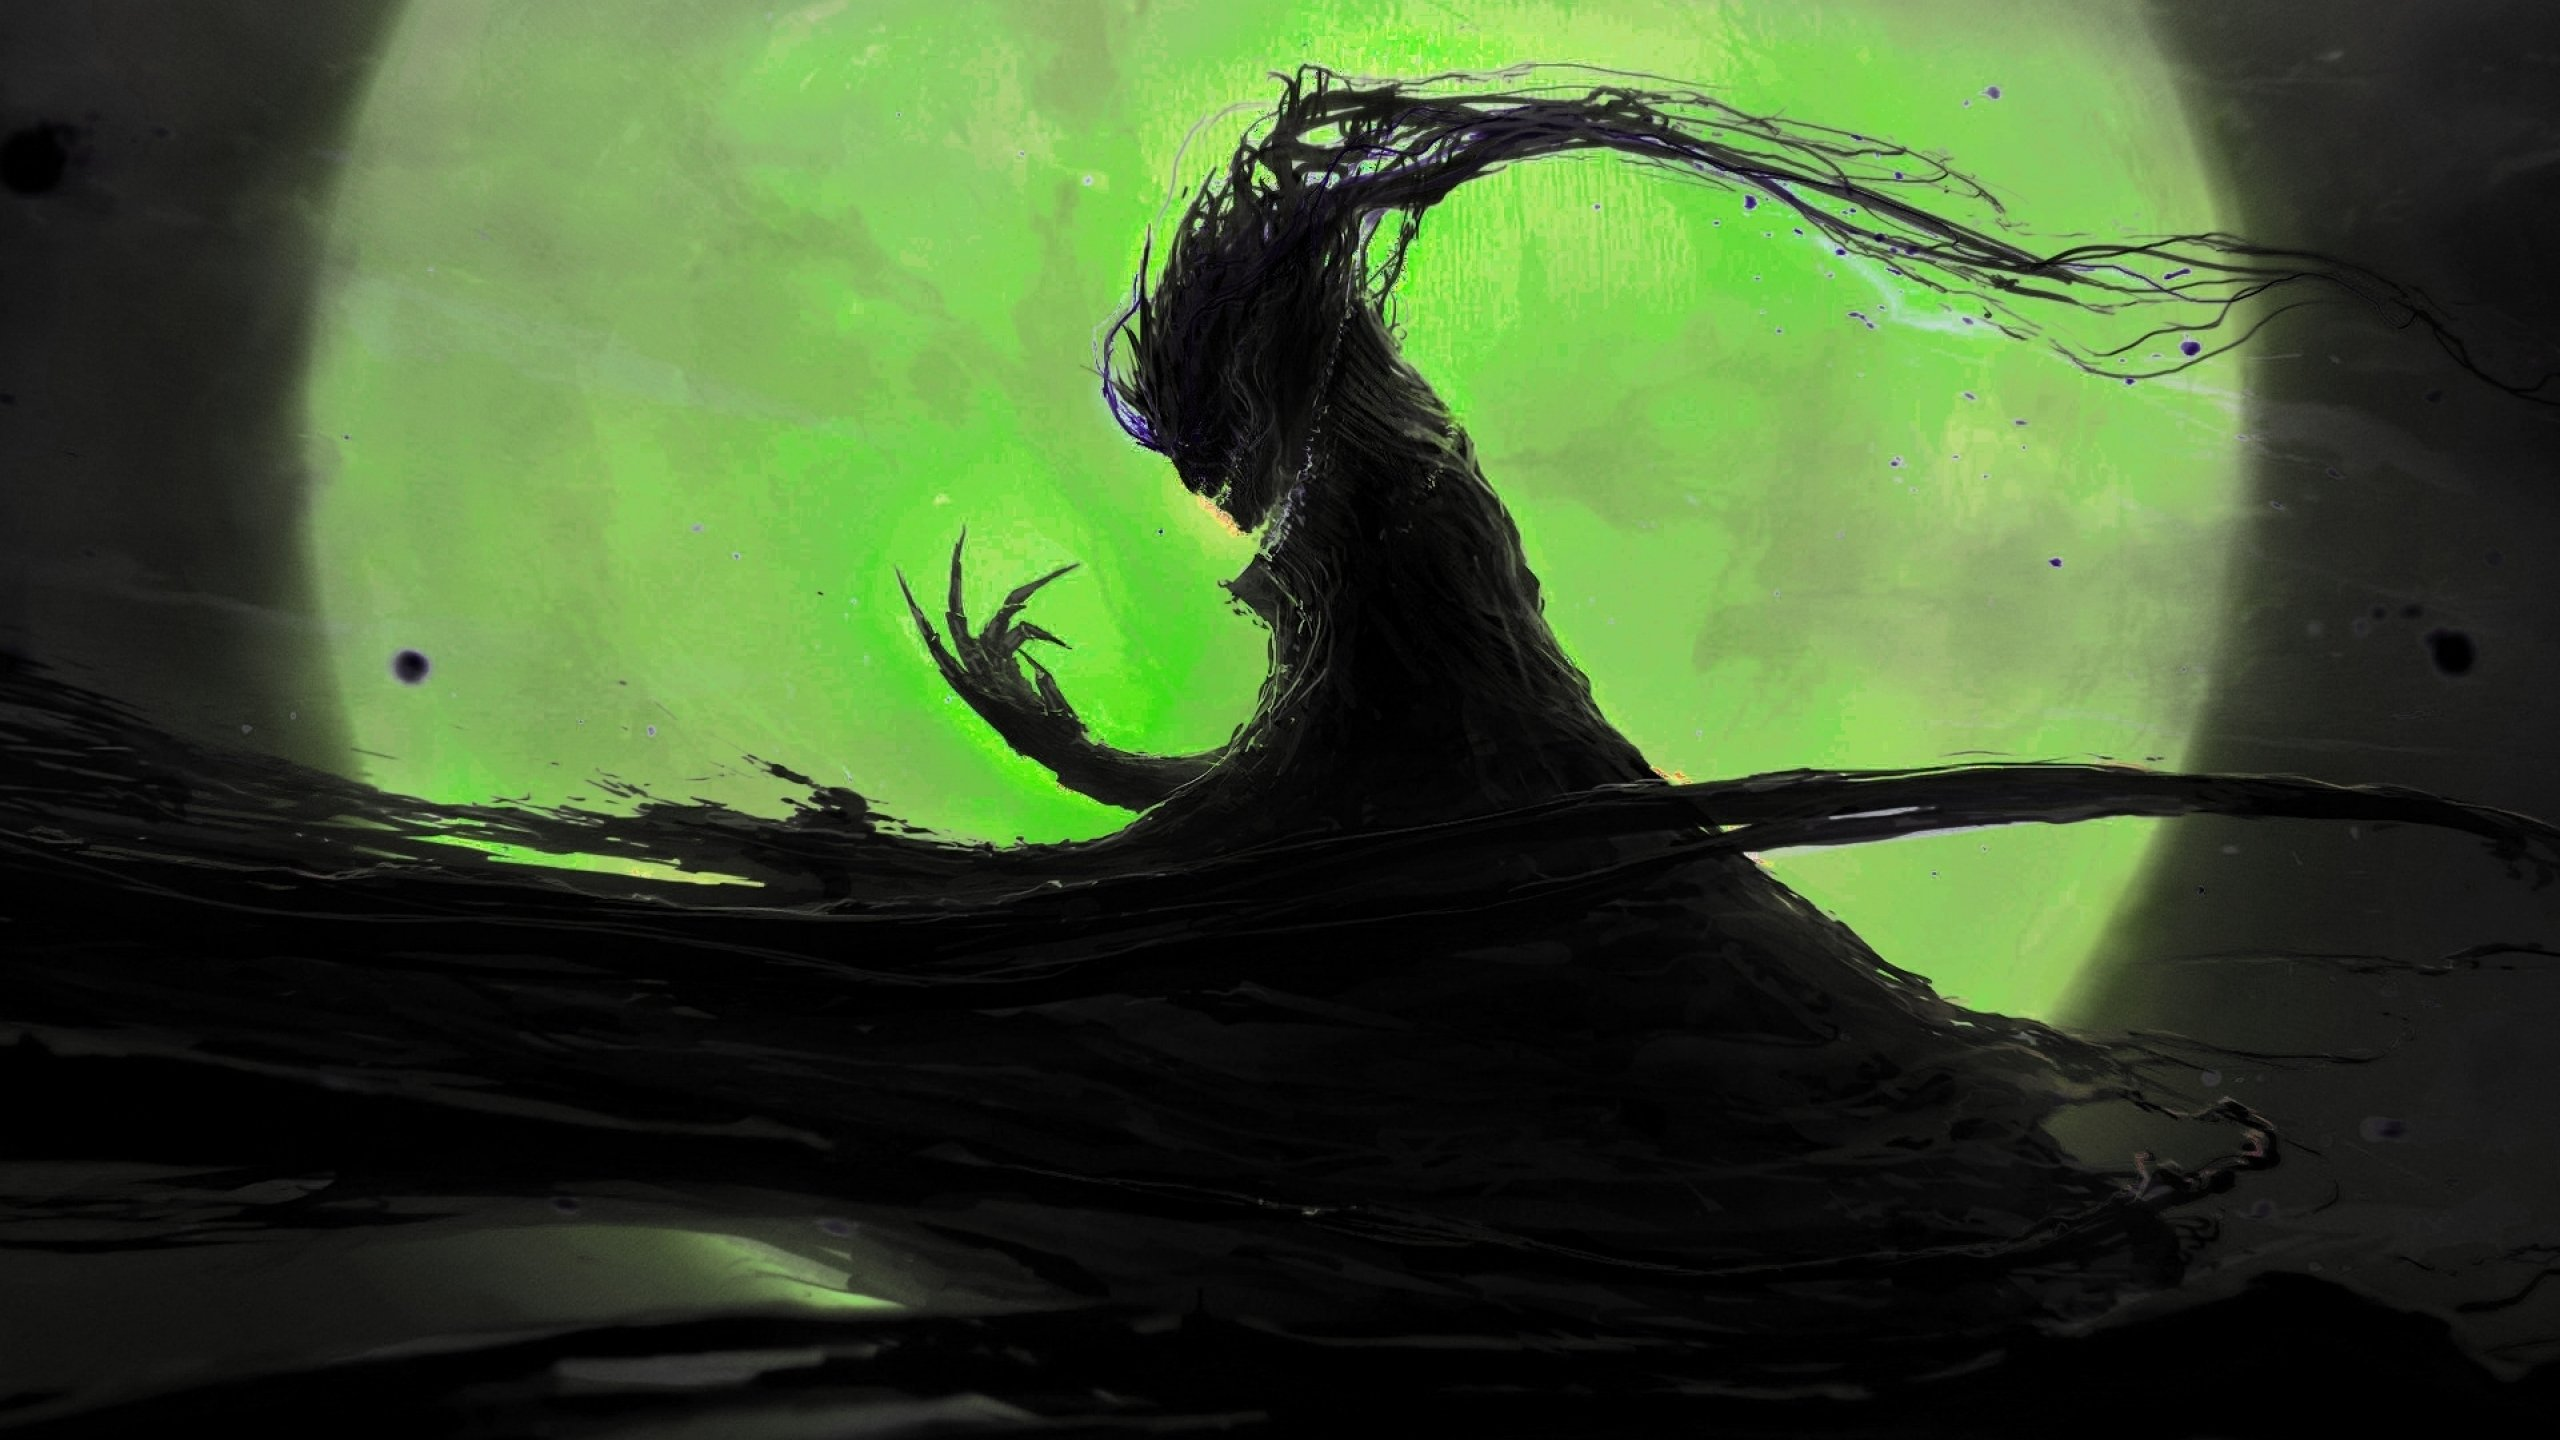 Demon evil dark horror fantasy monster art artwork 2560x1440